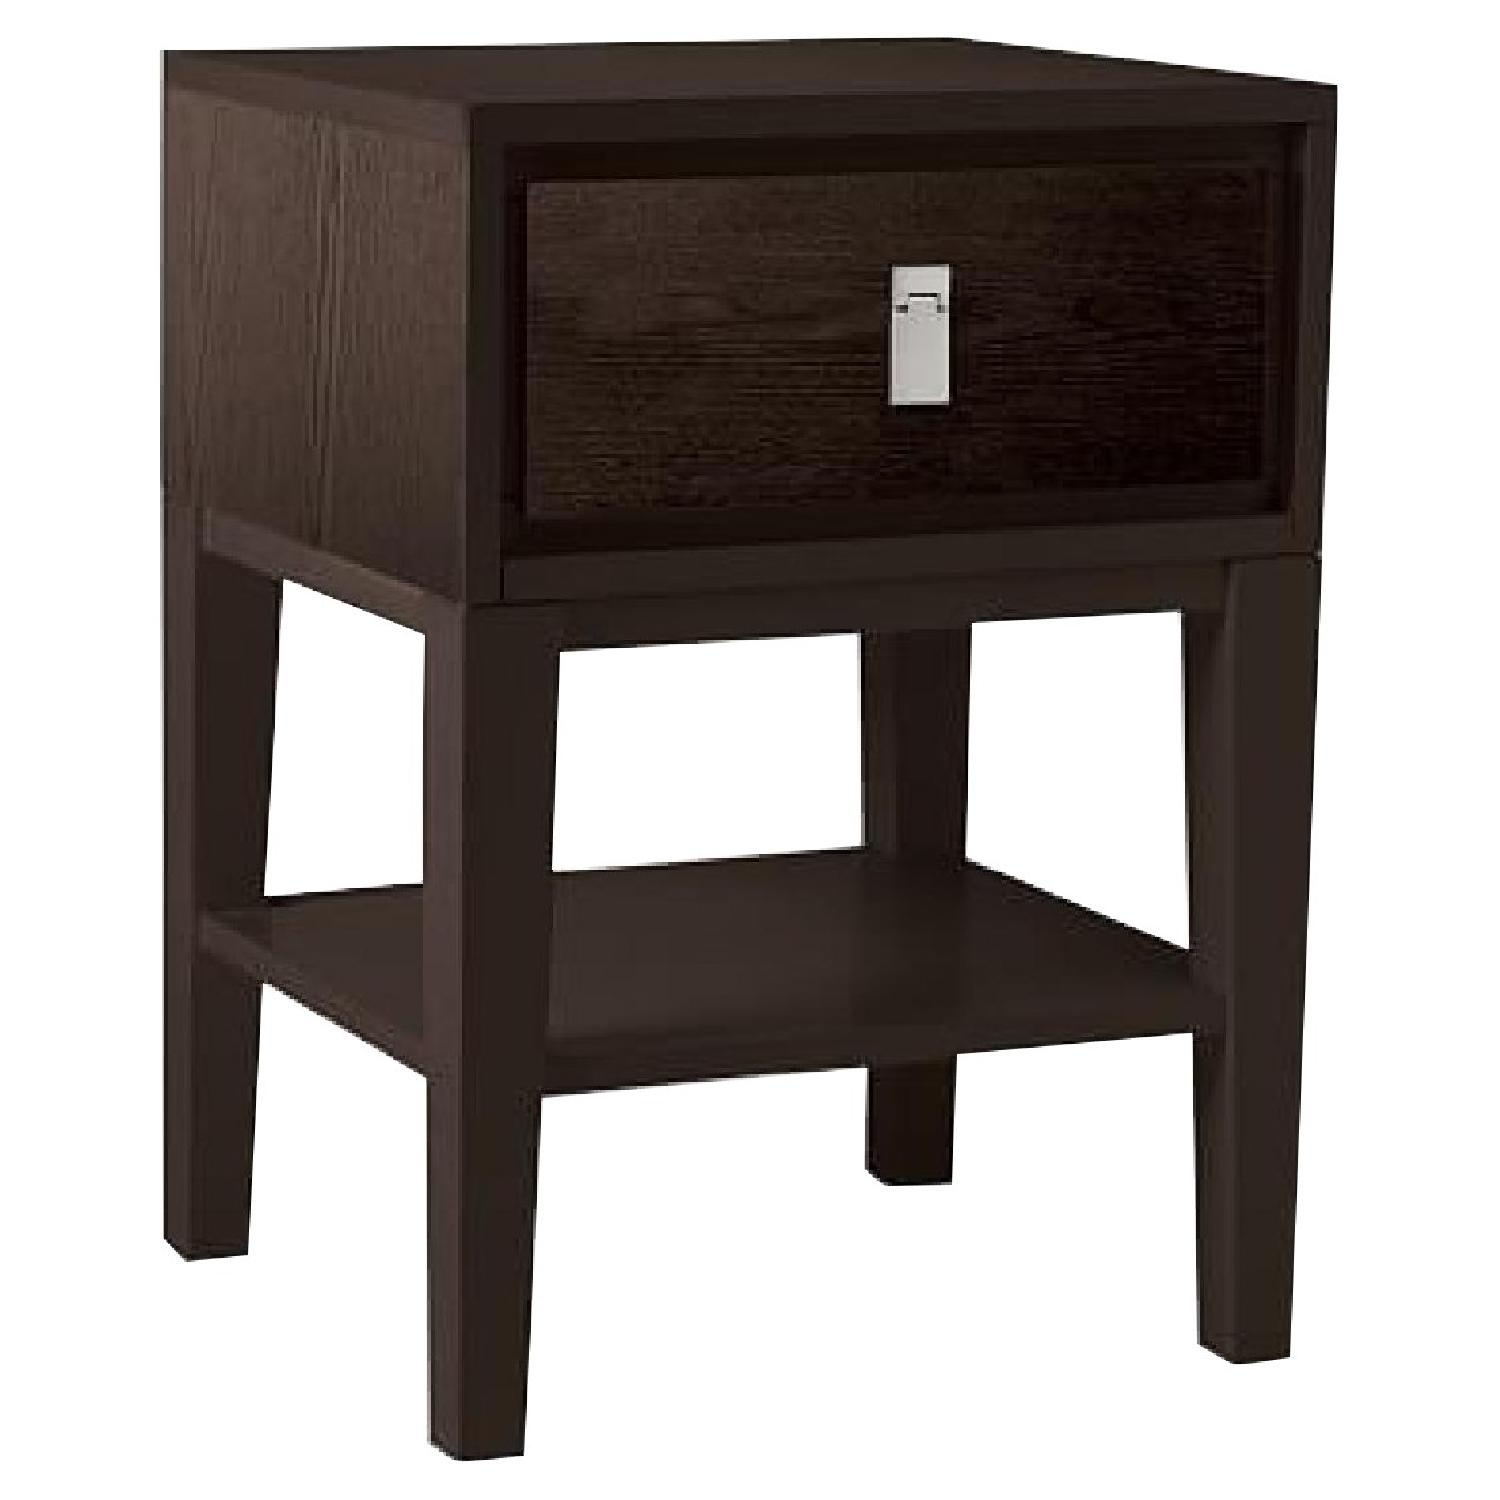 West Elm Niche Nightstand in Chocolate